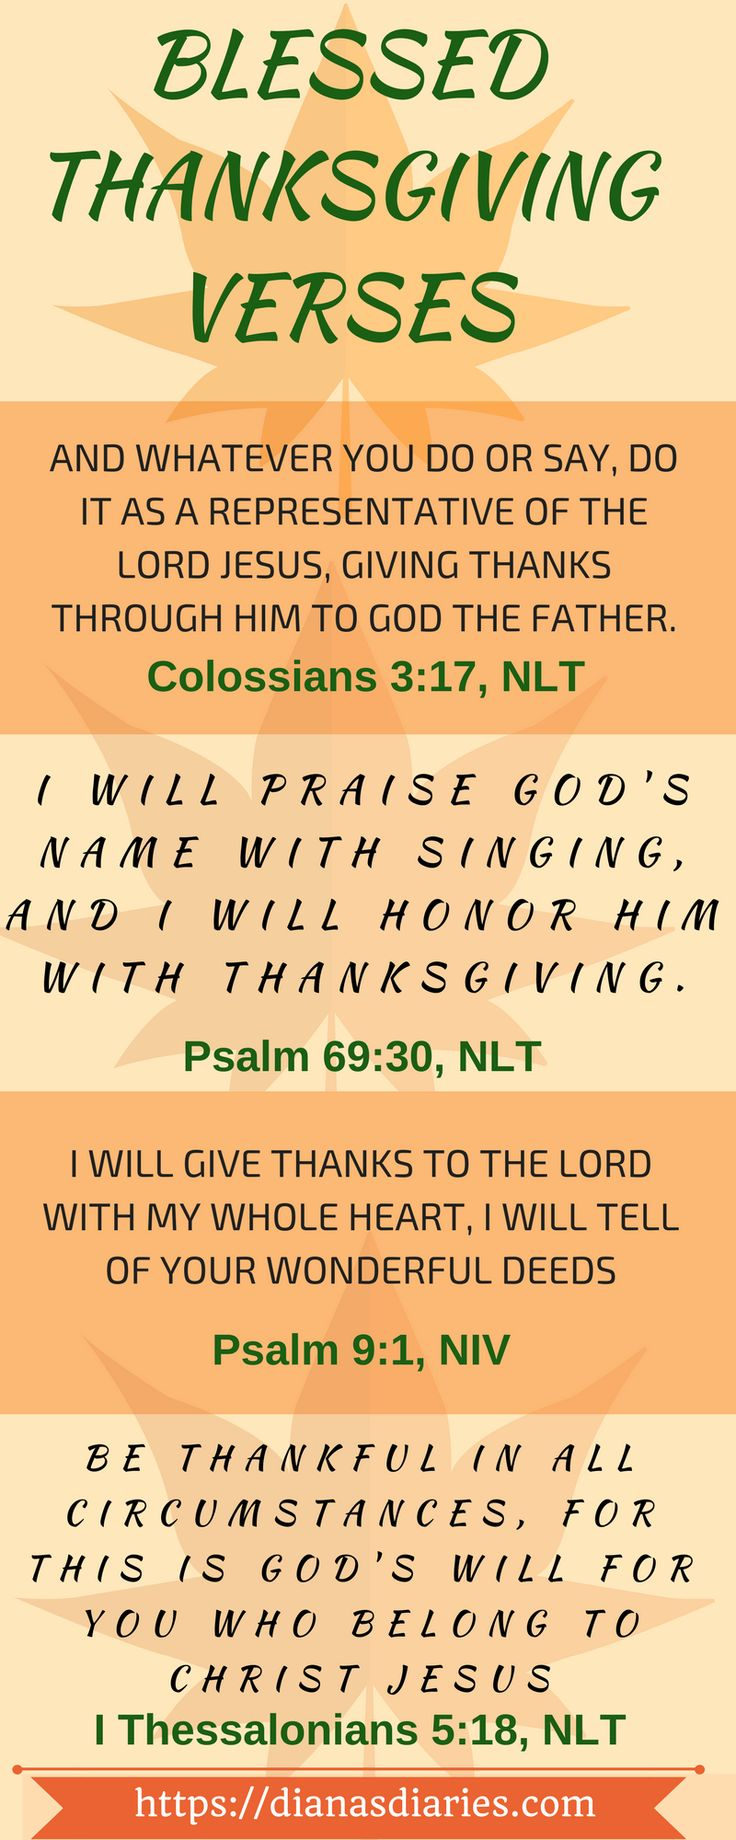 Happy Thanksgiving from my family to yours! I pray these 4 verses will bless and encourage you. I have included a link to print it out as well. #Thanksgiving #bookmark #bibleverses